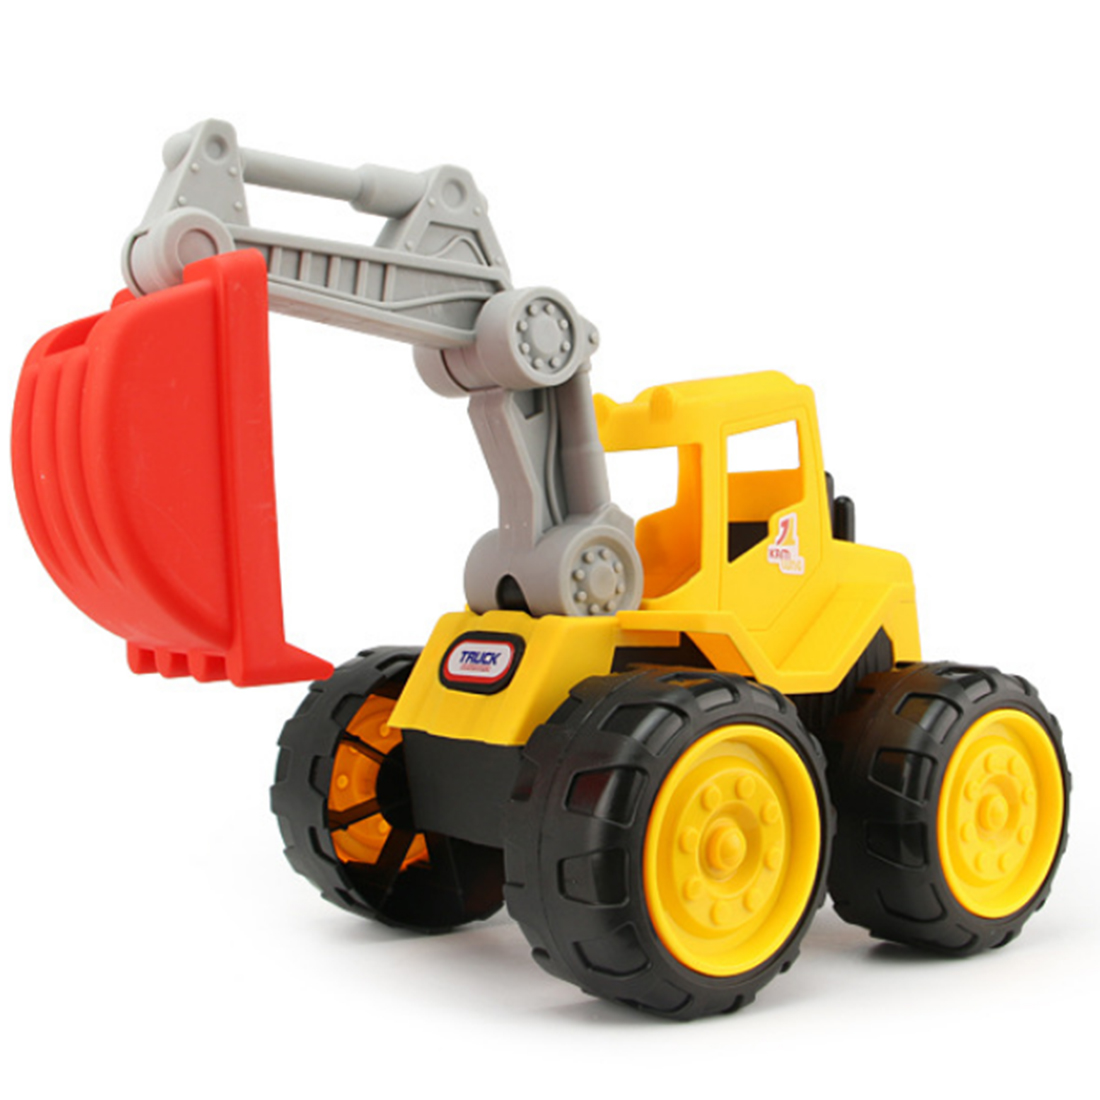 Beach Excavator Children Large Machineshop Truck Series Simulation Kids Fancy Summer Beach Sand Play Toys - Color Random